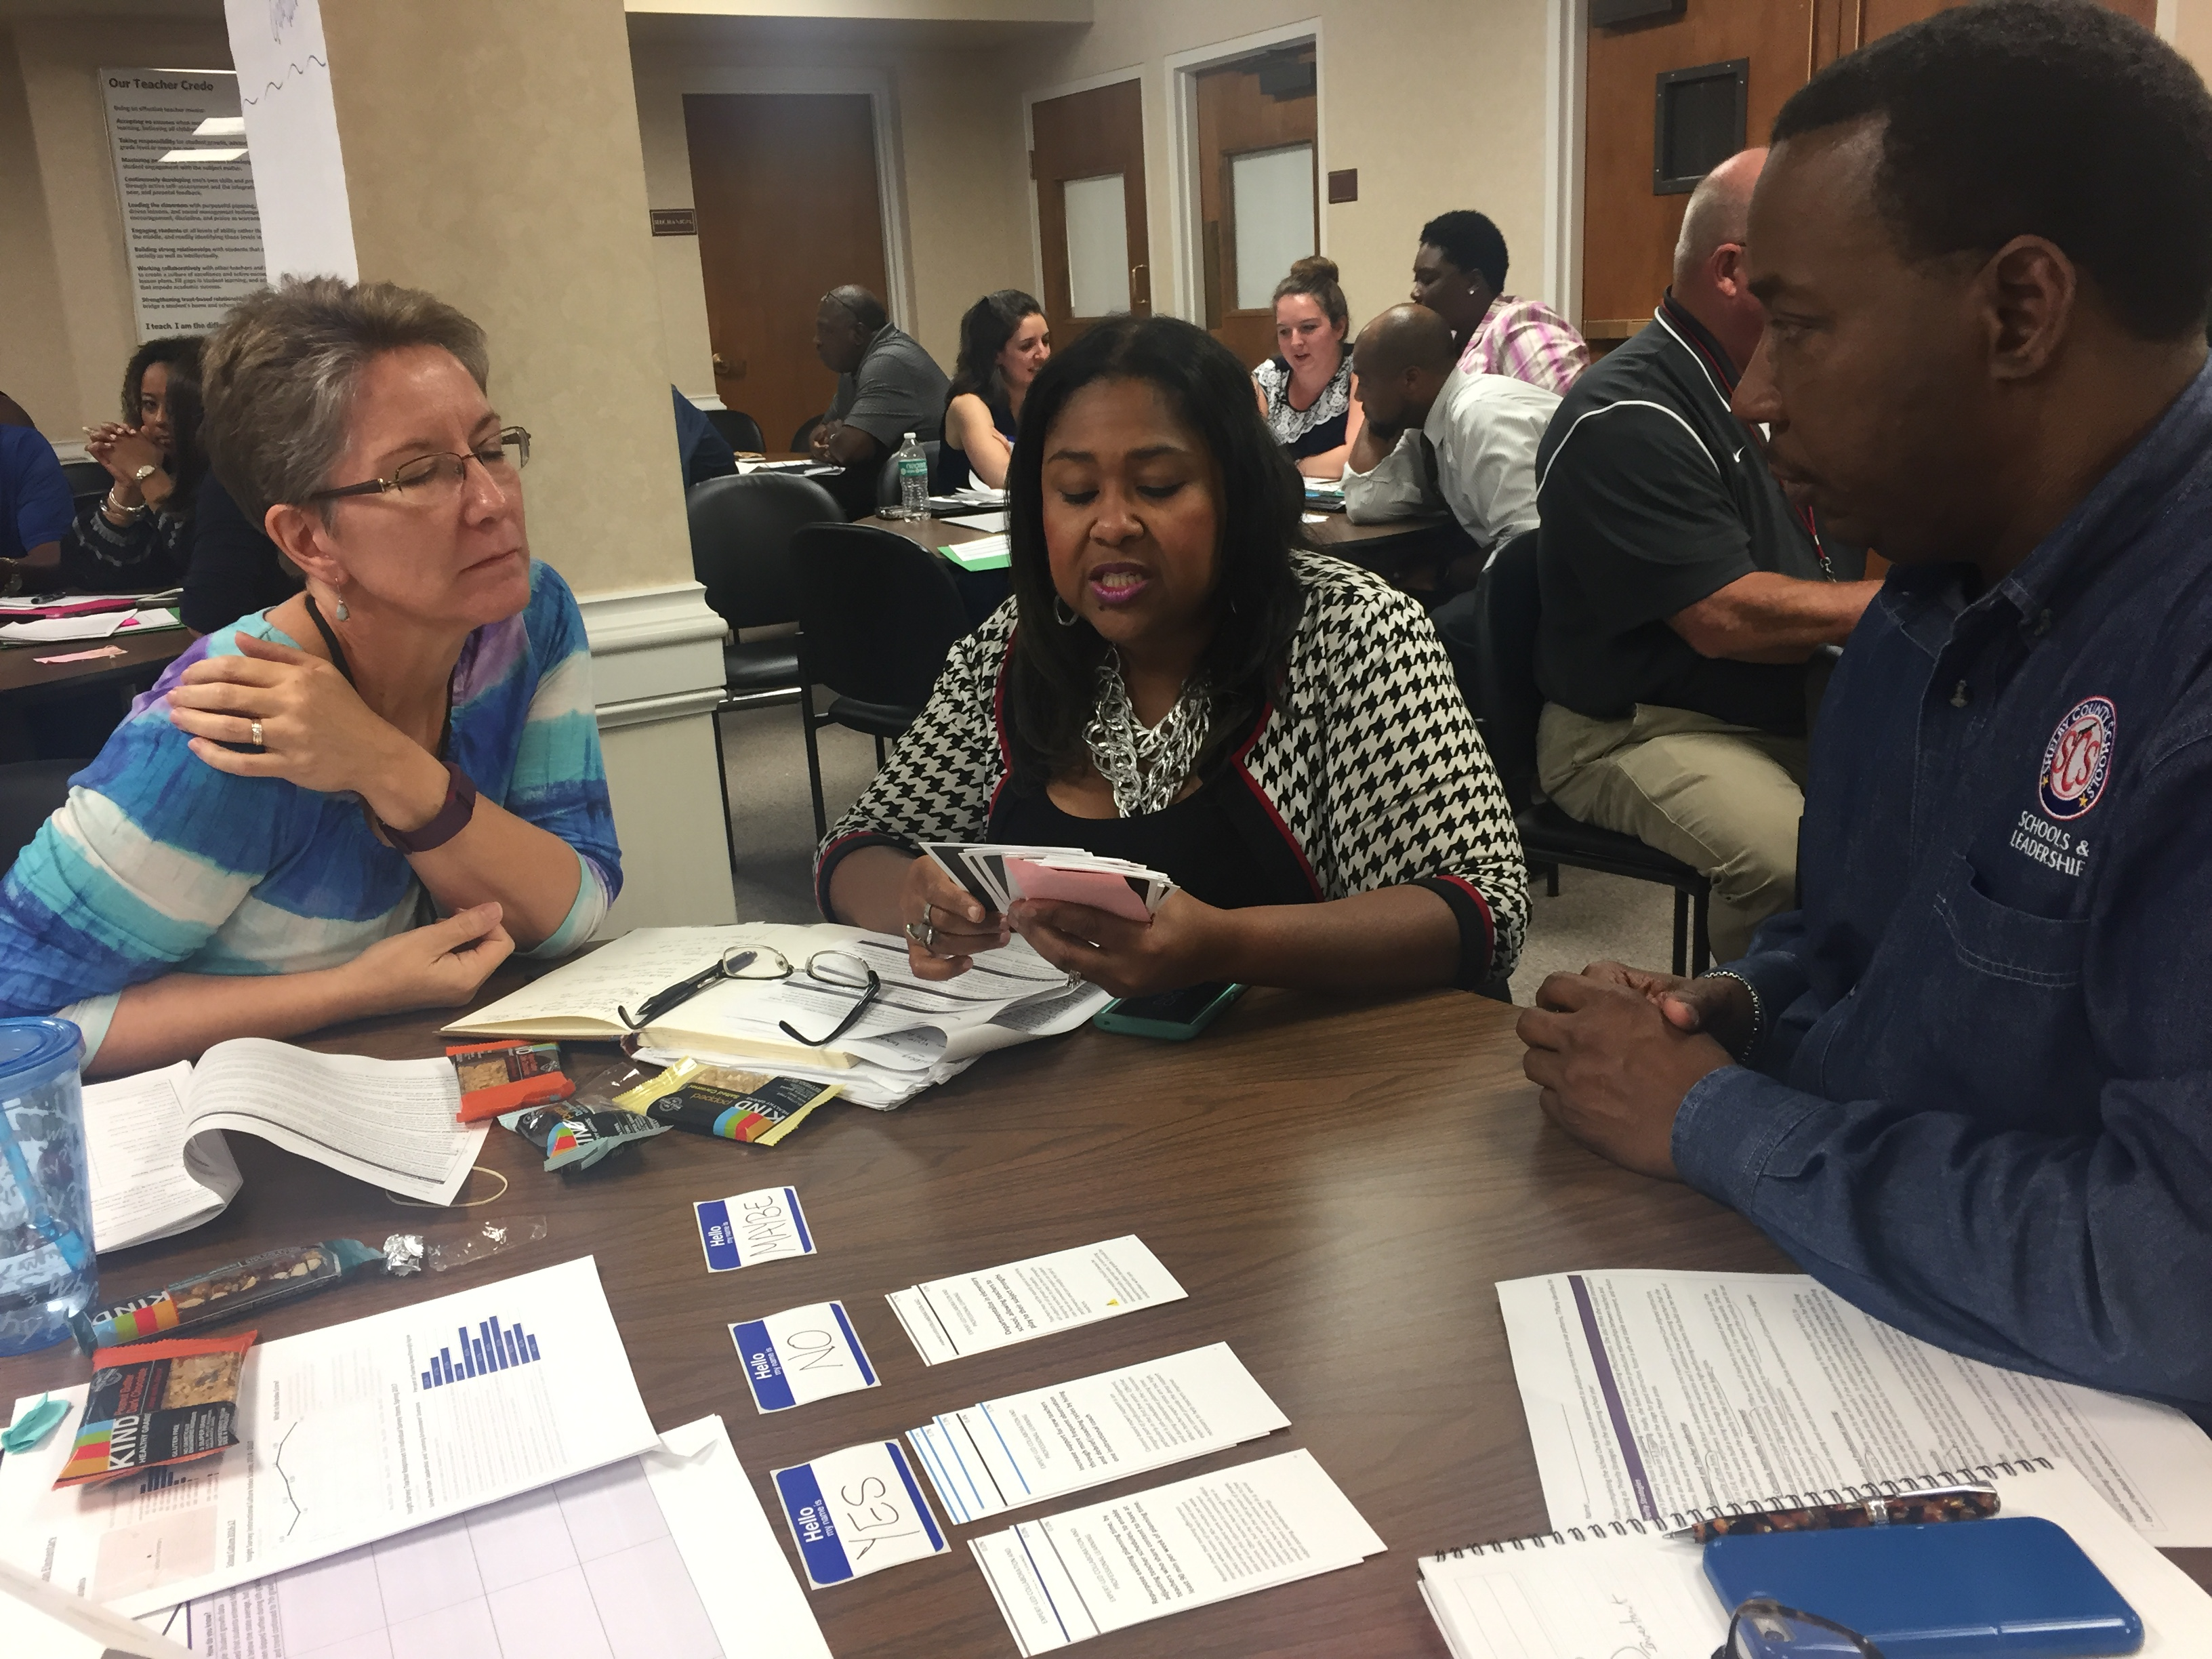 Memphis school staff playing Hold'em Aug 2017 pic 1